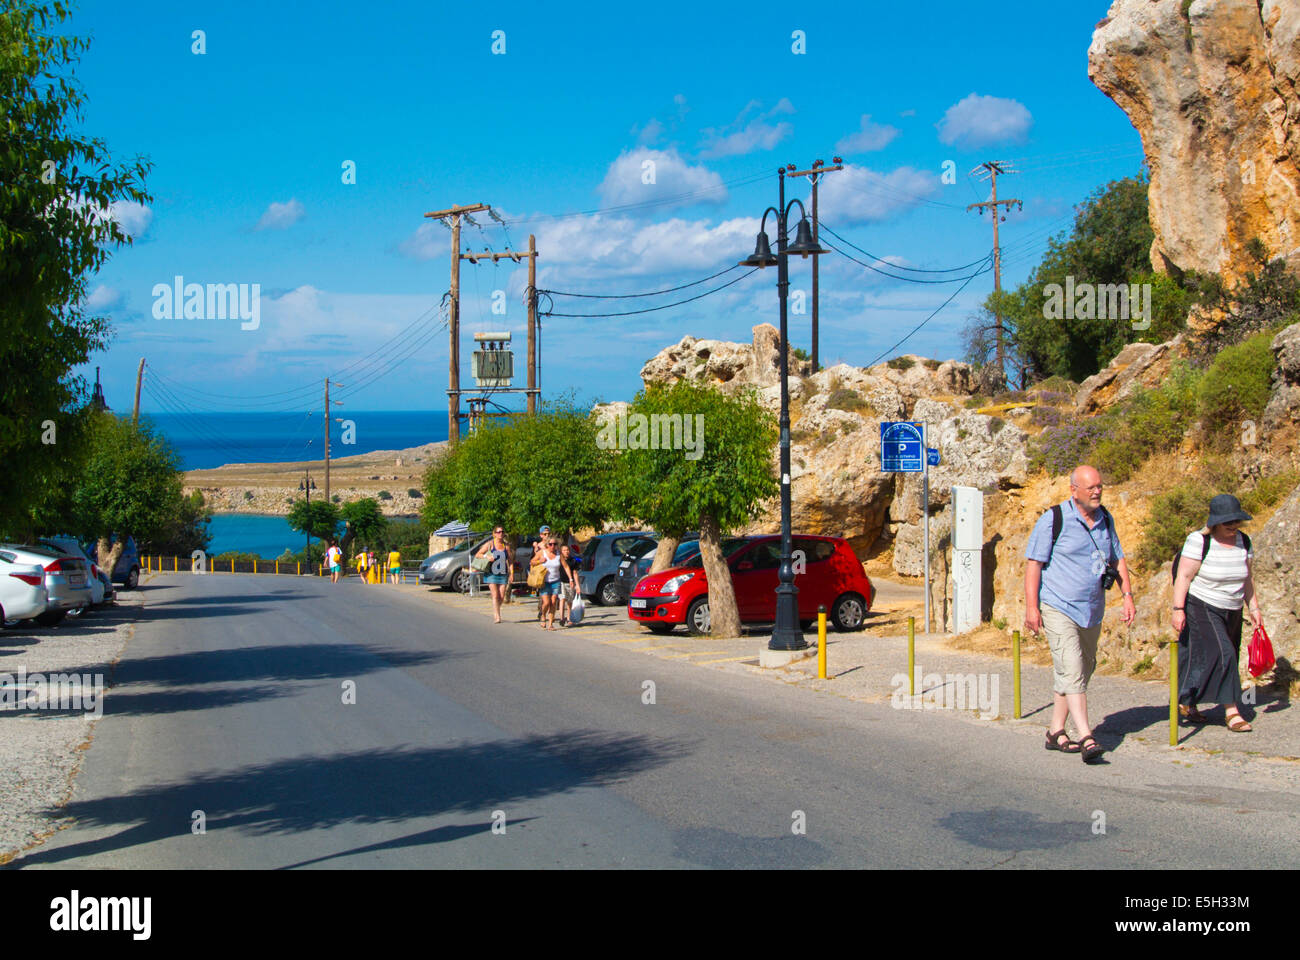 Road leading down to the old town and beach, Lindos town, Rhodes island, Dodecanese islands, Greece, Europe - Stock Image